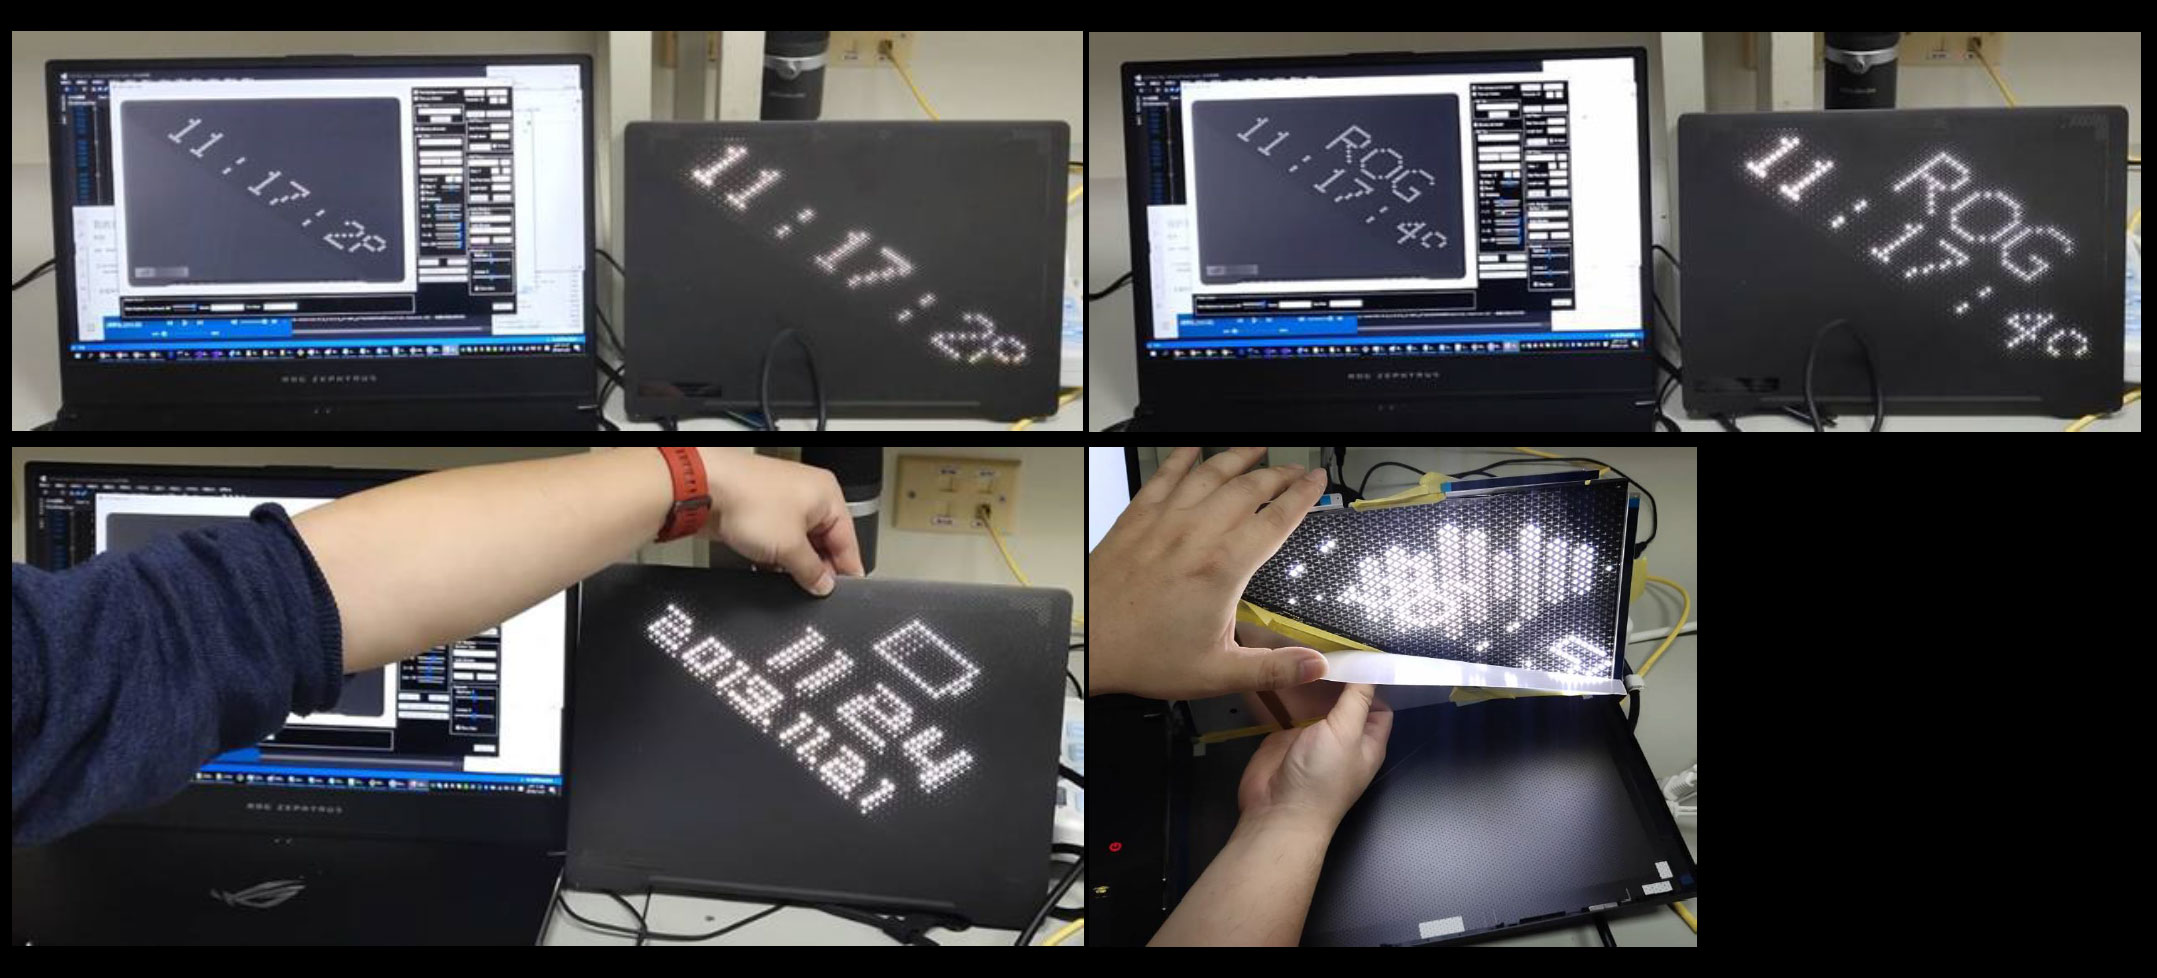 A preview of the AreaMatrix LED display